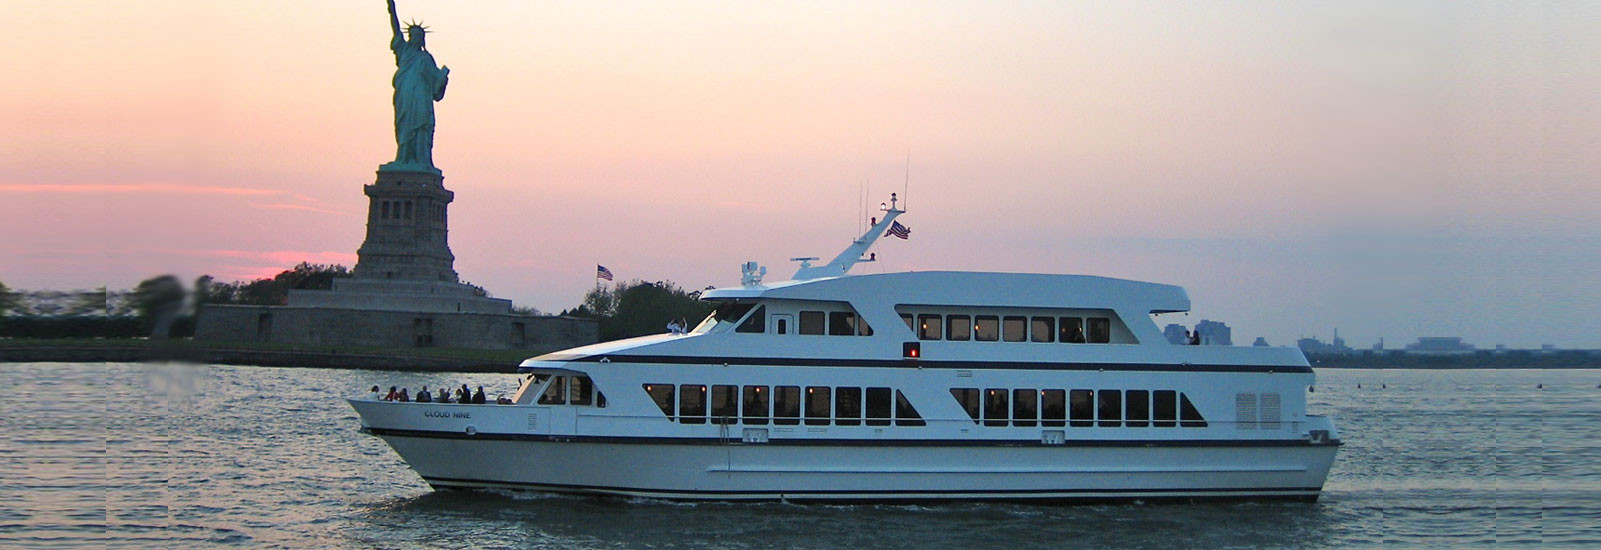 NYC Luxury Yacht Charters Amp Private Party Boats Metro Yacht Charters Of New York